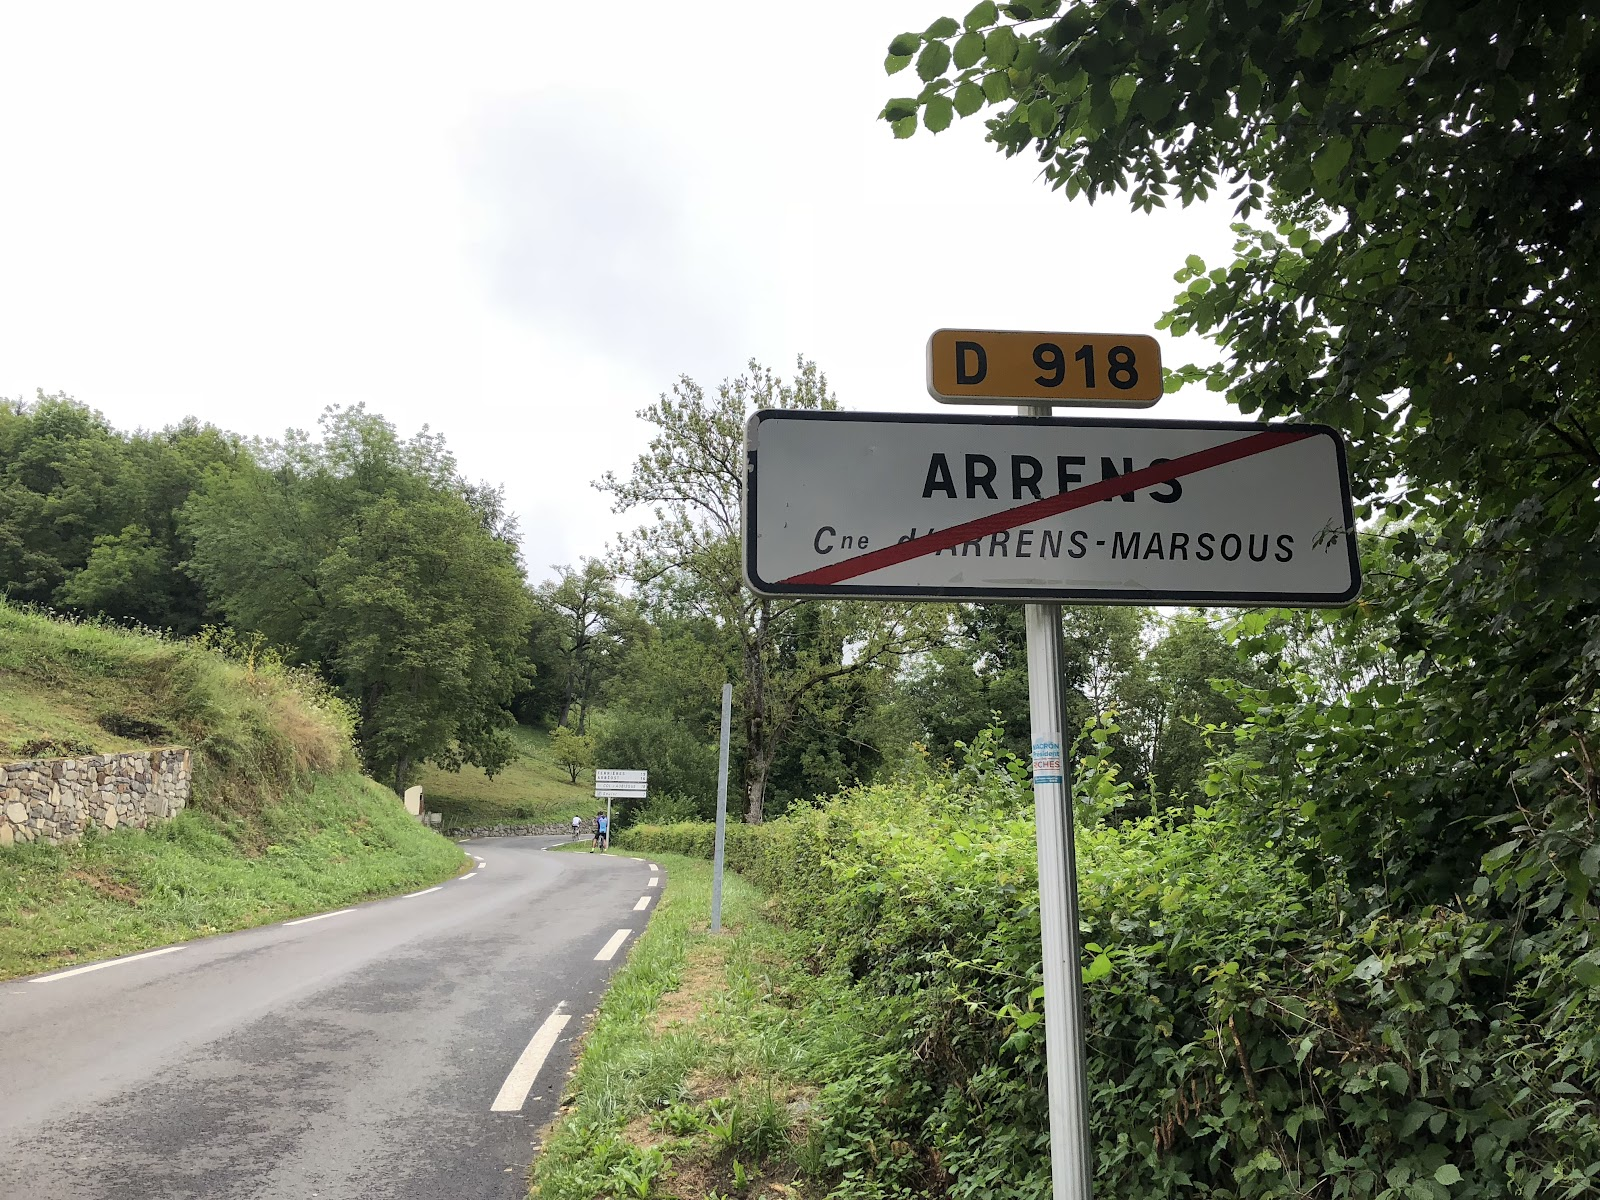 Bike climb Col d'Aubisque  from Argeles Gazost - leaving Arrens road sign